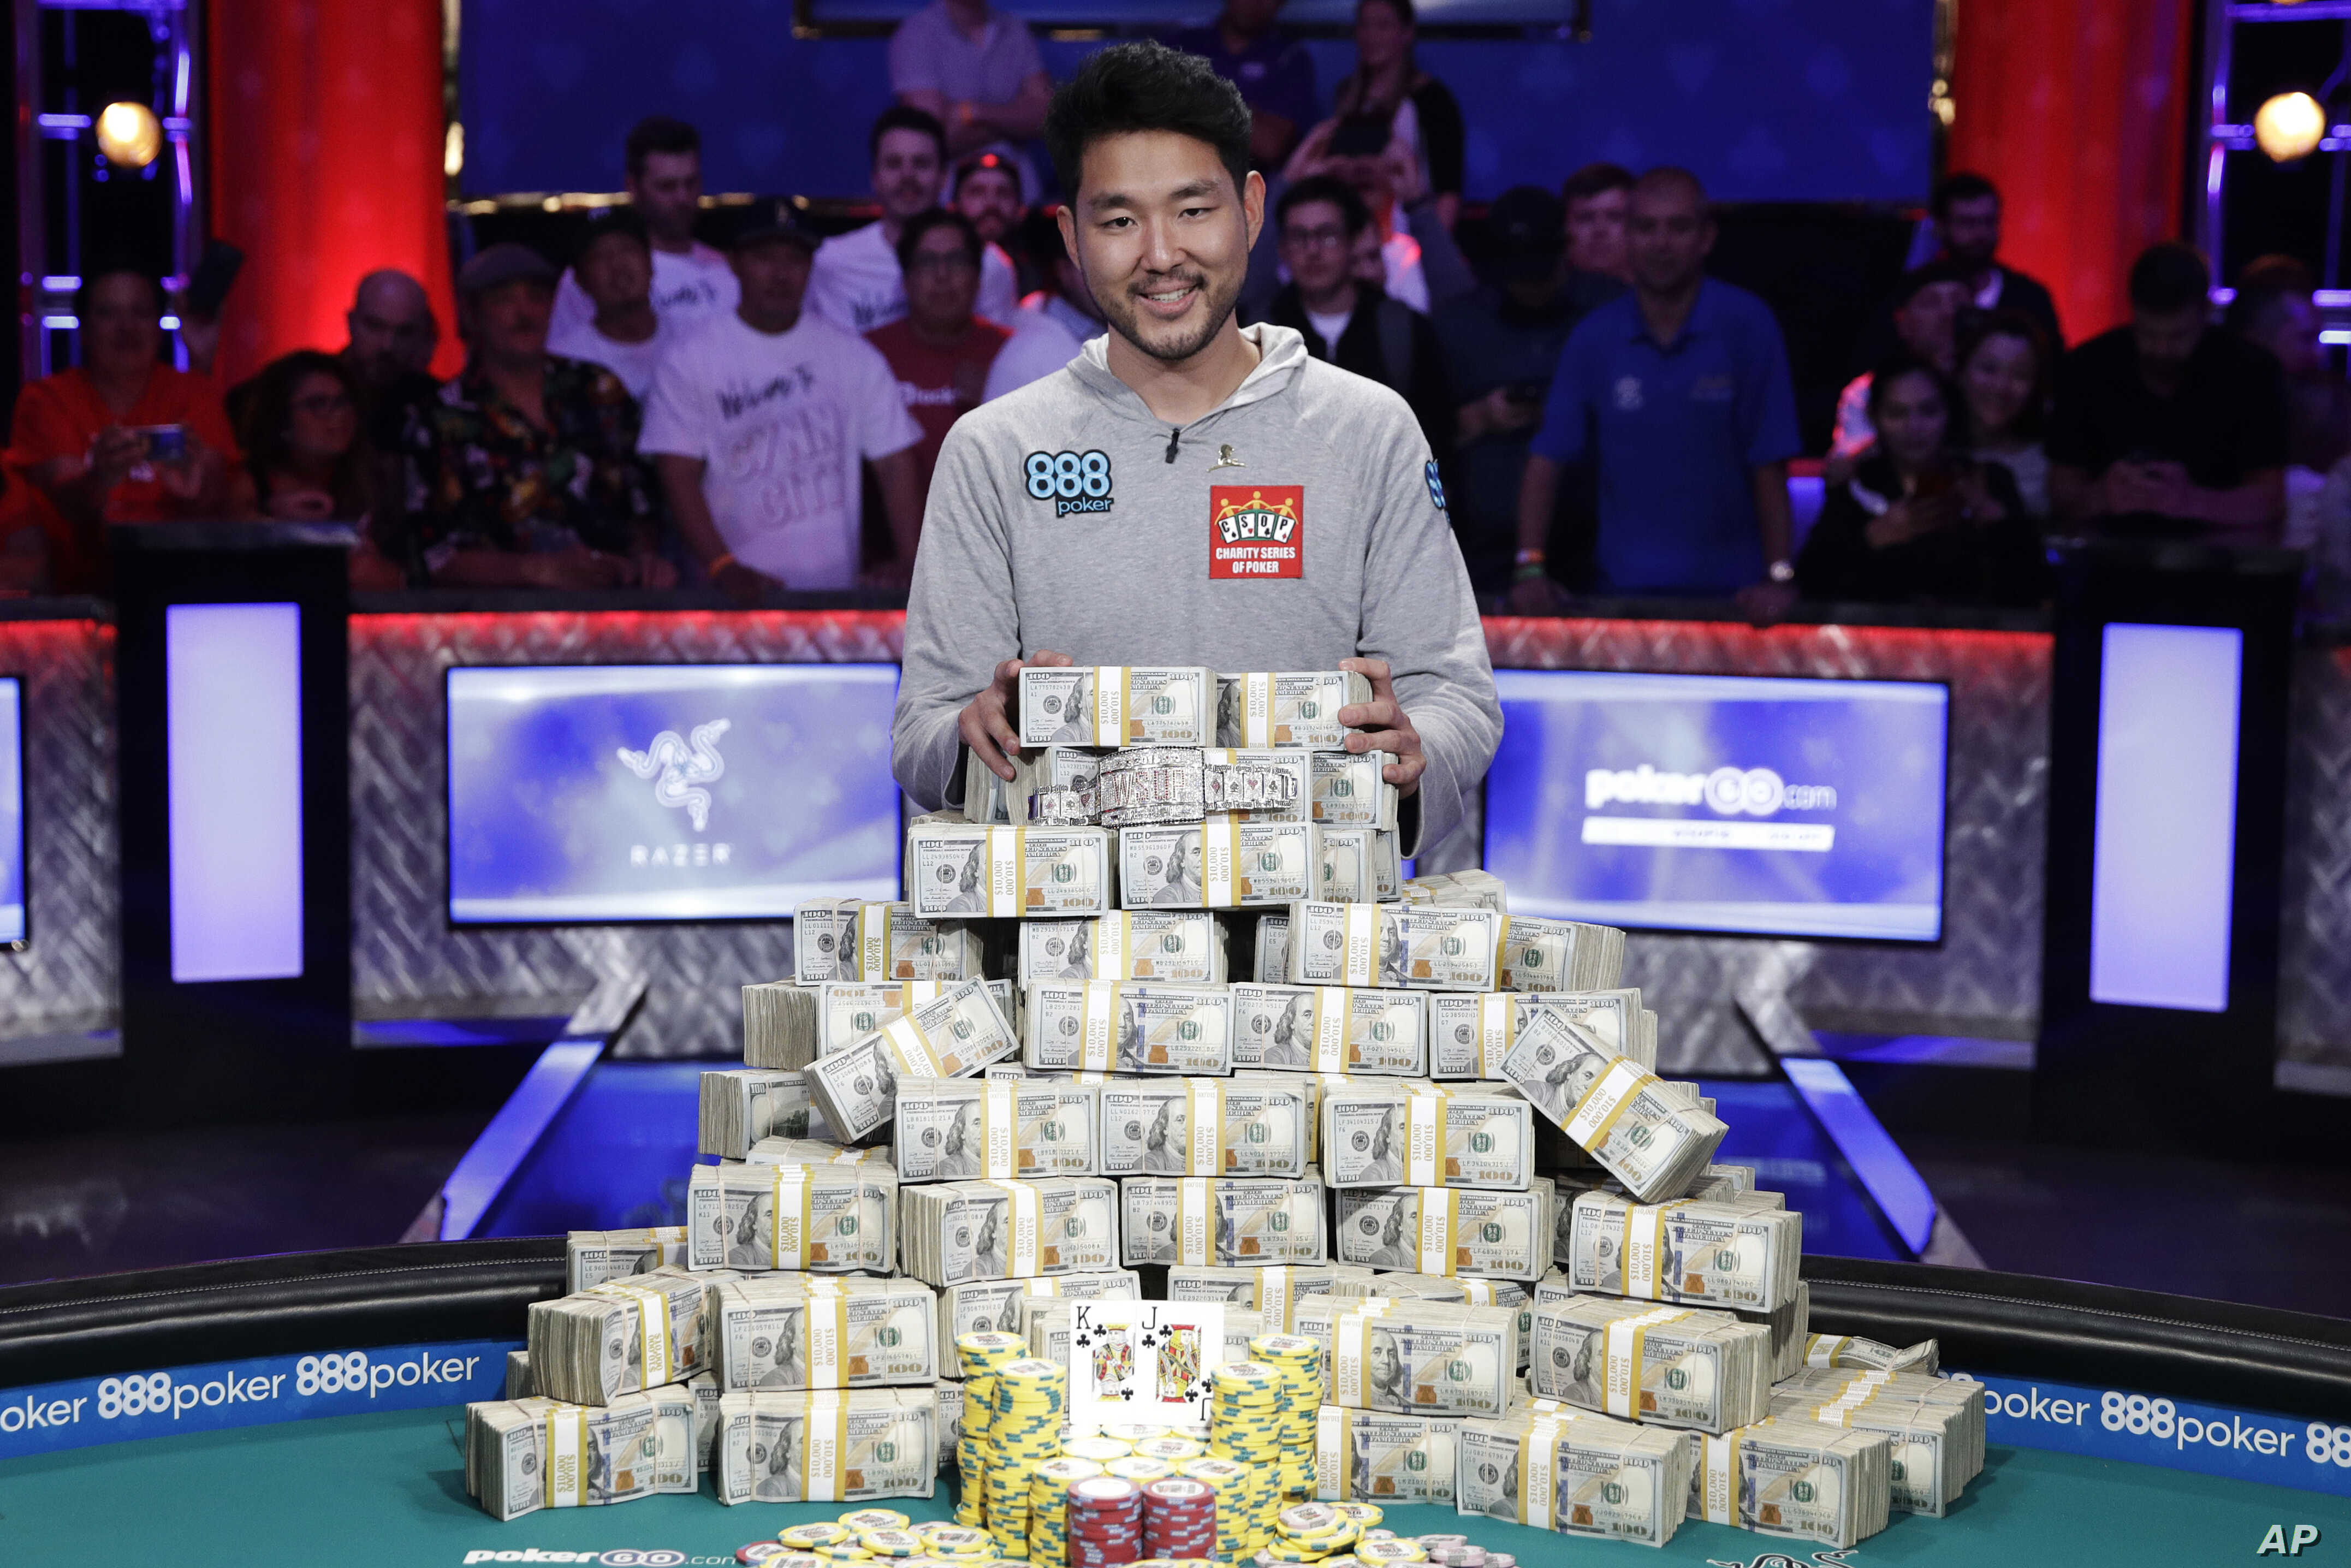 50th Annual World Series Of Poker Opens In Las Vegas Voice Of America English